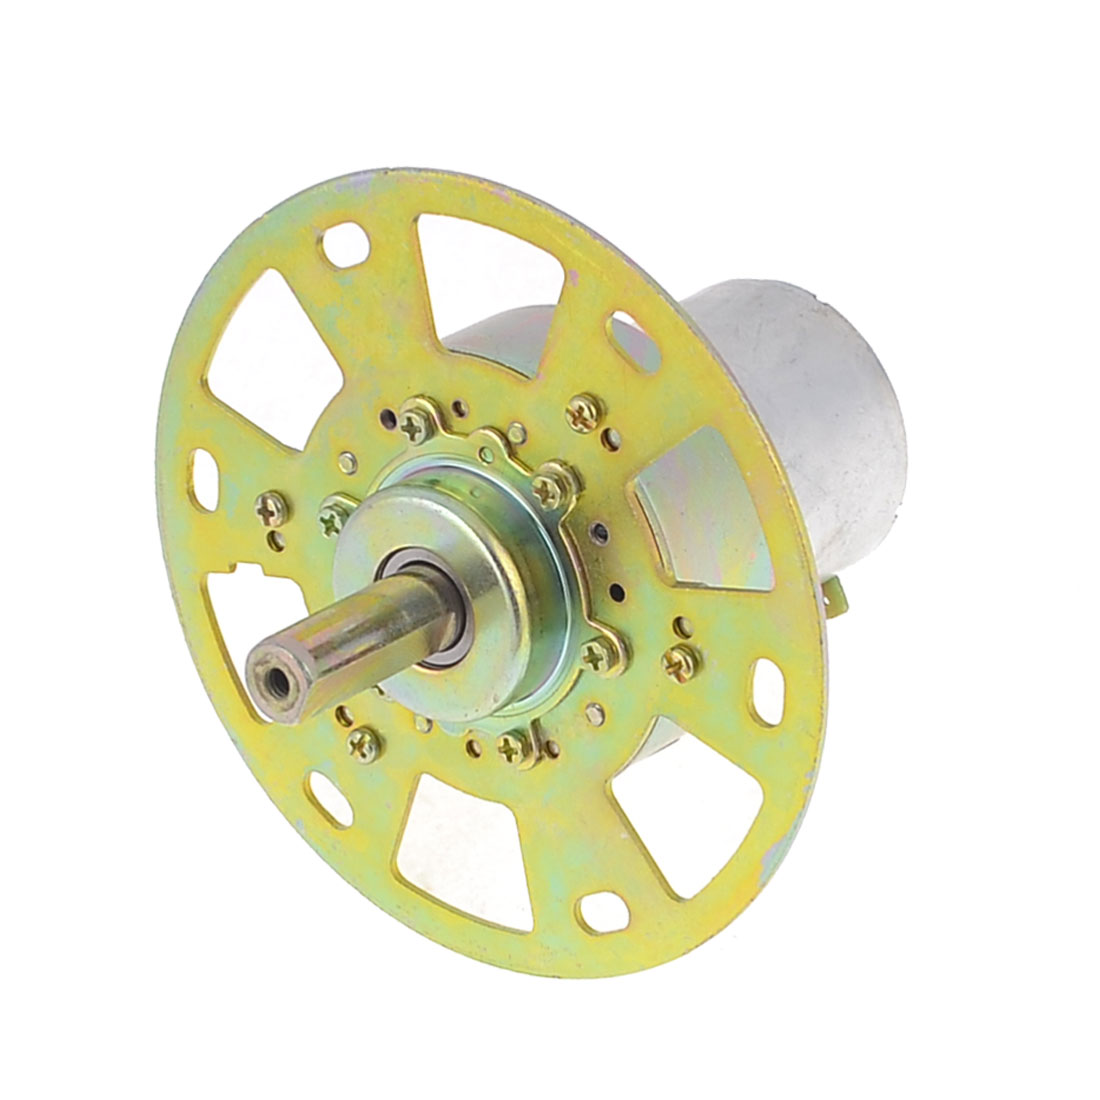 DC 12V Rated Voltage 0.04A 6.5RPM Output Speed Bronze Tone Motor